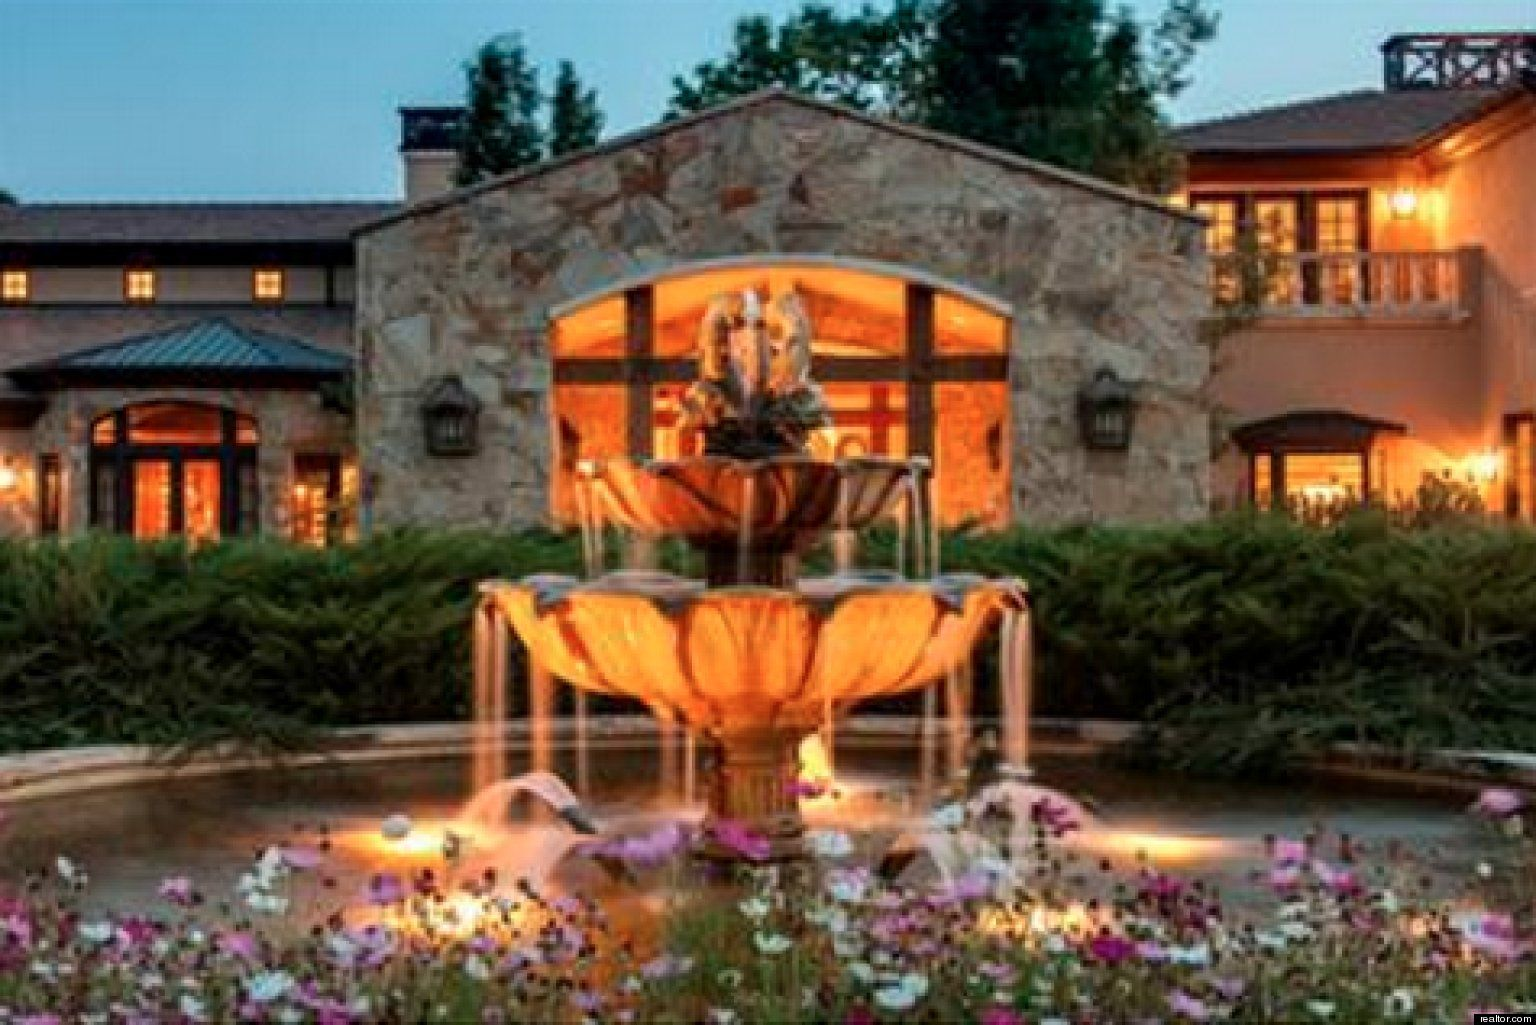 10 Most Expensive Homes In Denver S Suburbs Cherry Hills Village Expensive Houses Beautiful Homes